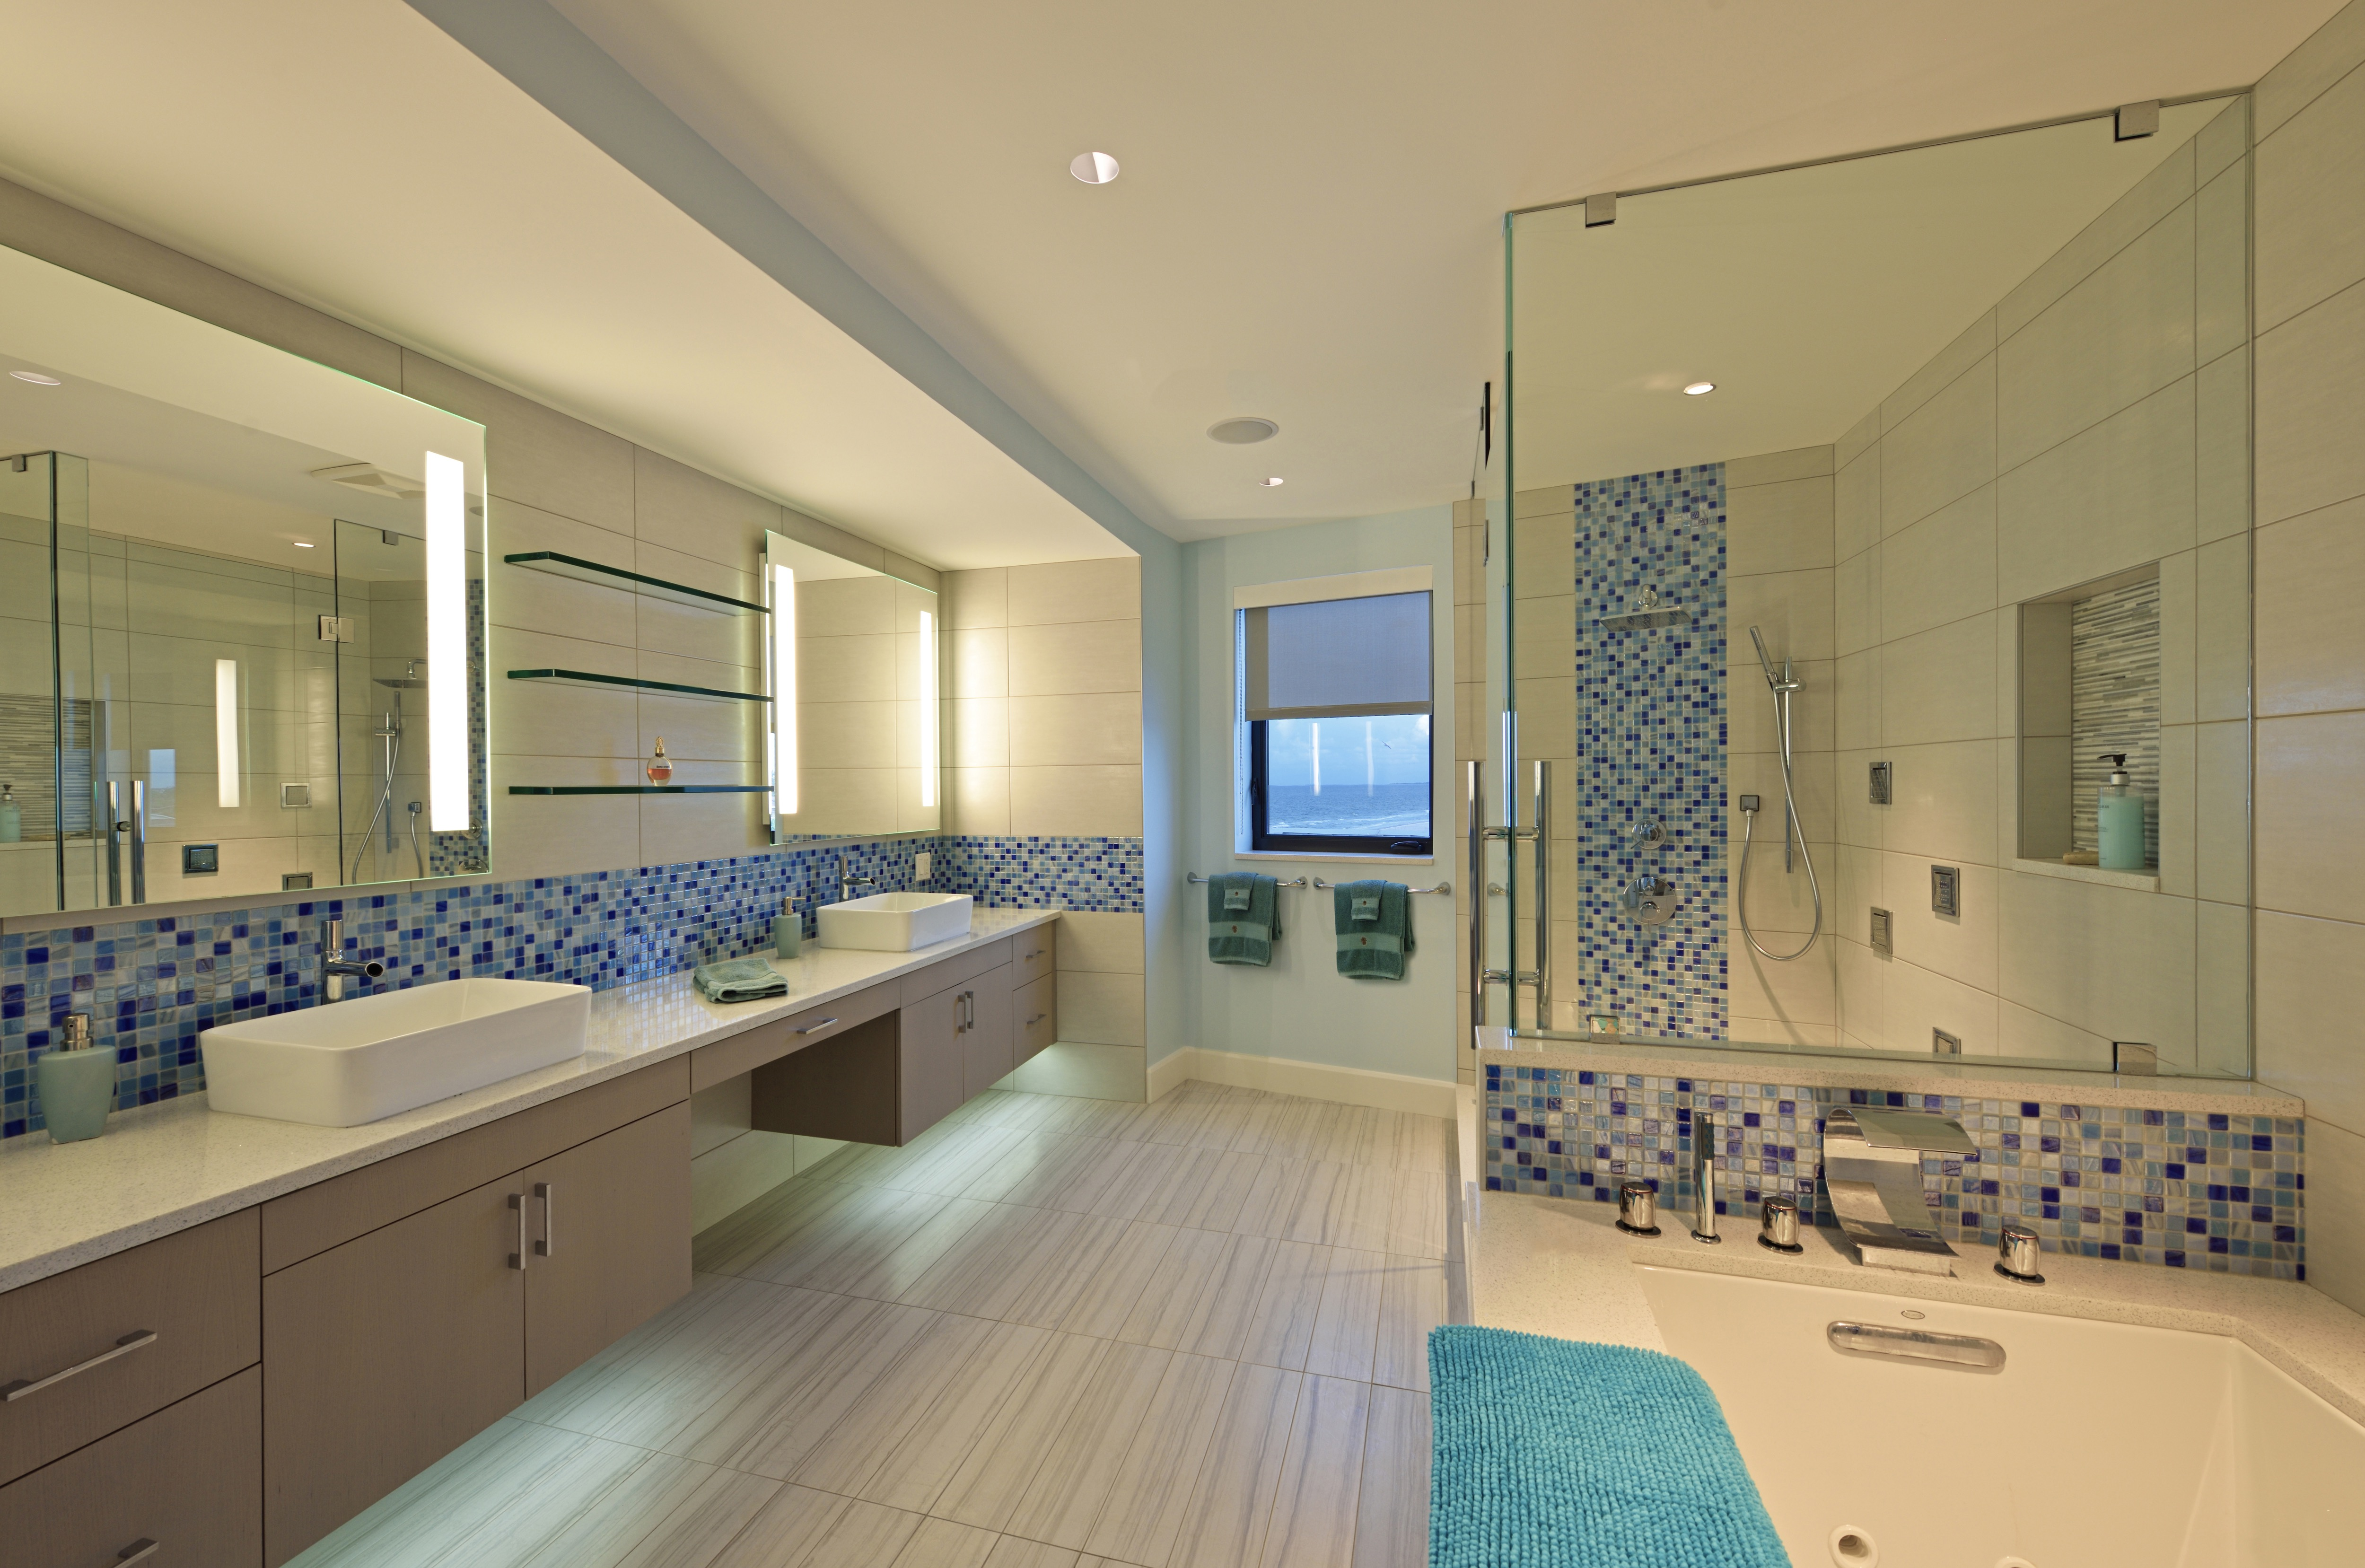 Luxurious Modern Walk In Shower Interior  (Image 8 of 22)